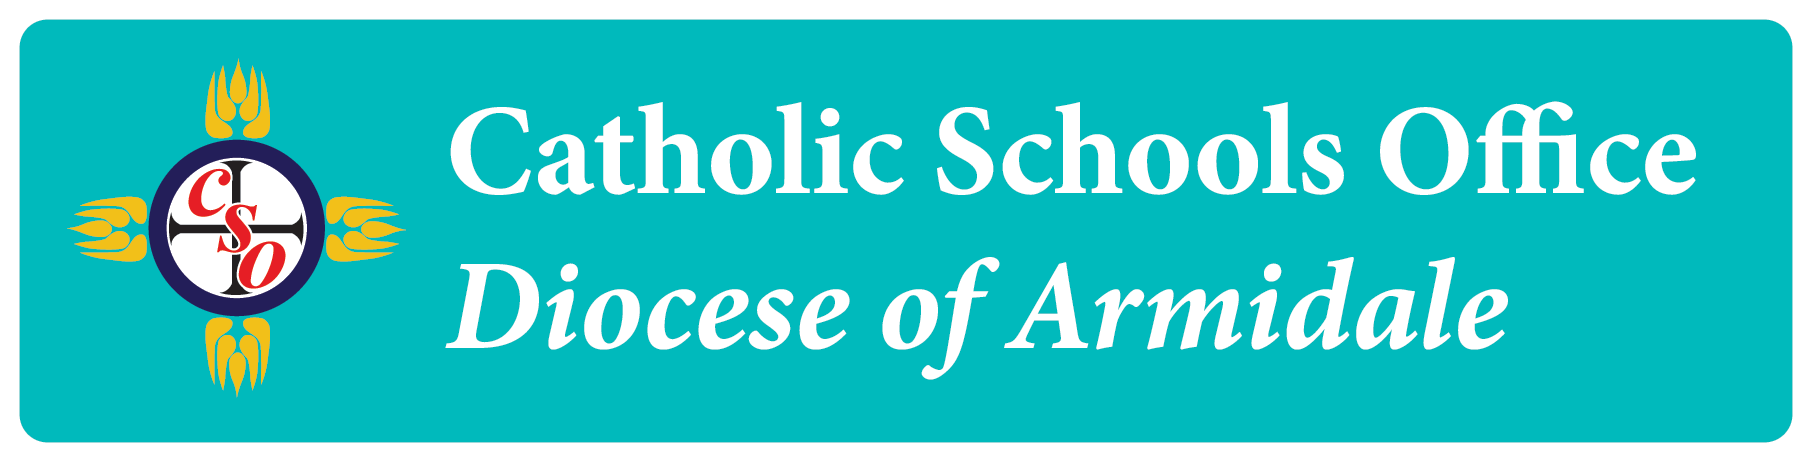 Catholic Schools Office, Diocese of Armidale